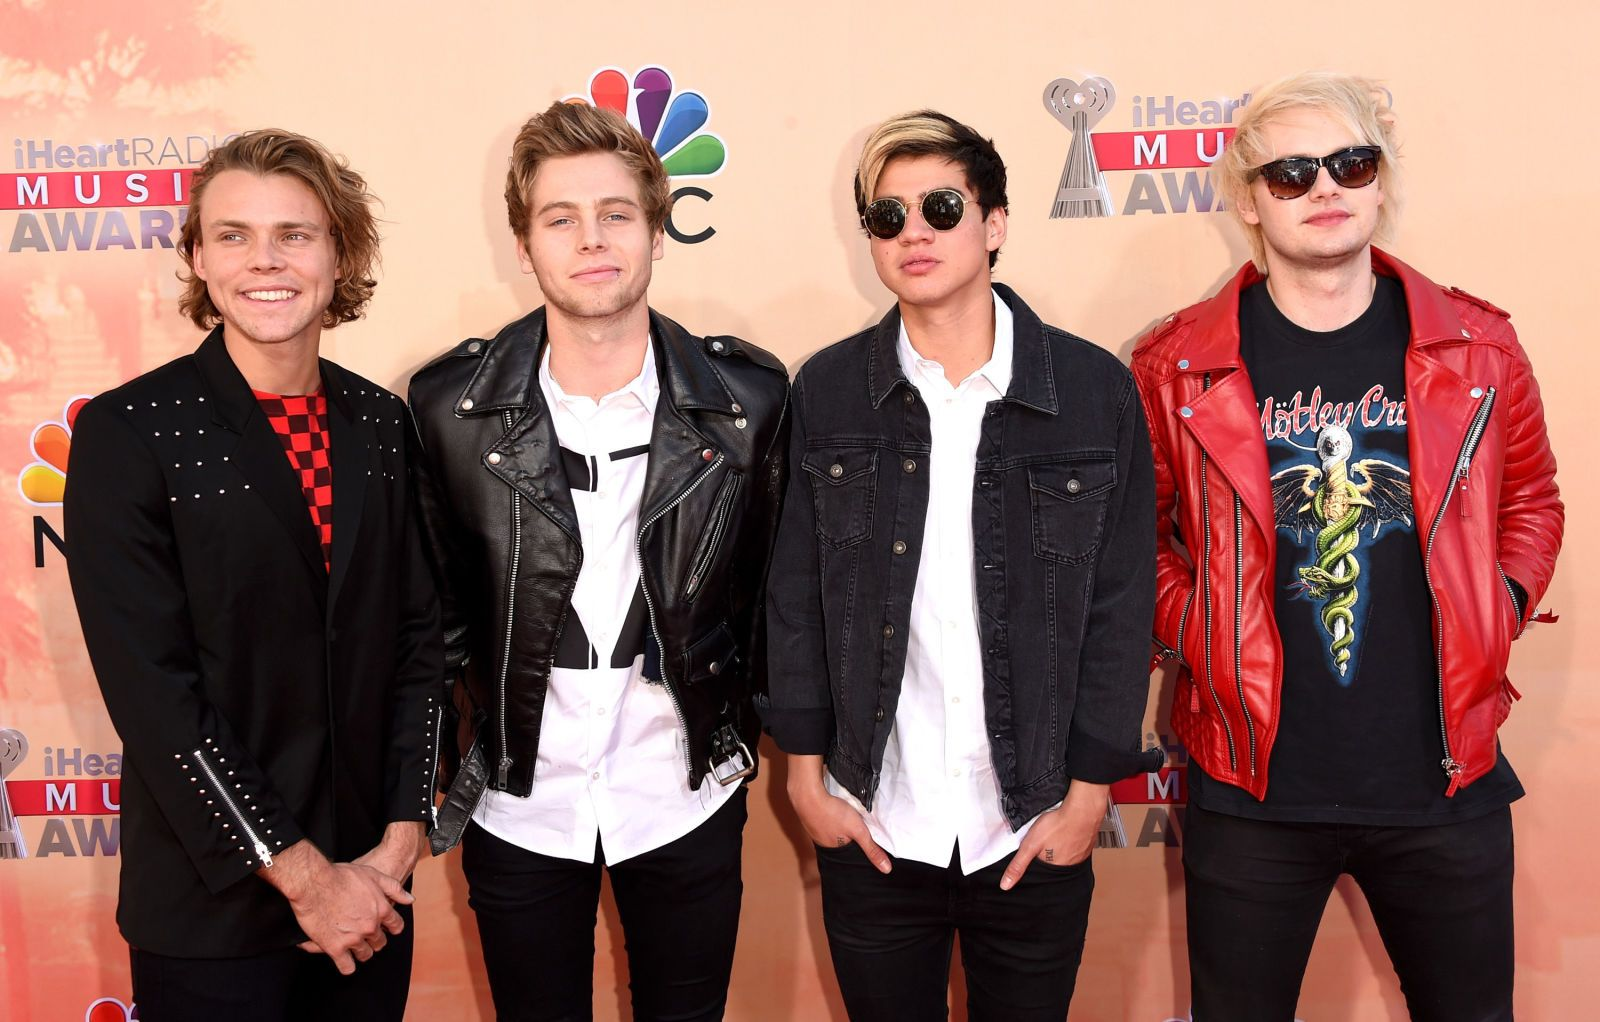 5 Seconds of Summer Trivia